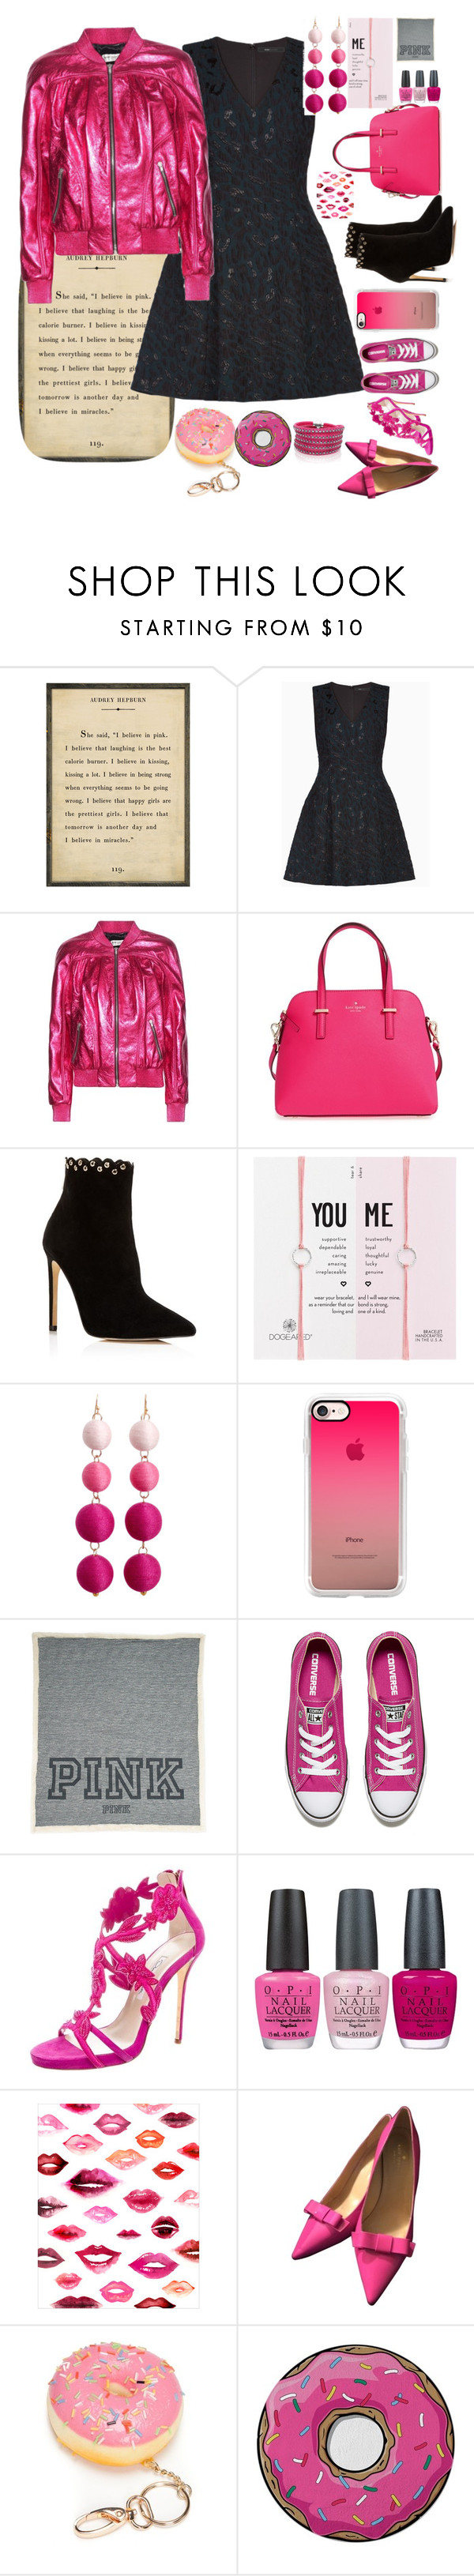 """The choice is mine"" by dancininvictory ❤ liked on Polyvore featuring BCBGMAXAZRIA, Yves Saint Laurent, Kate Spade, Raye, Dogeared, Casetify, Converse, Oscar de la Renta, OPI and WALL"